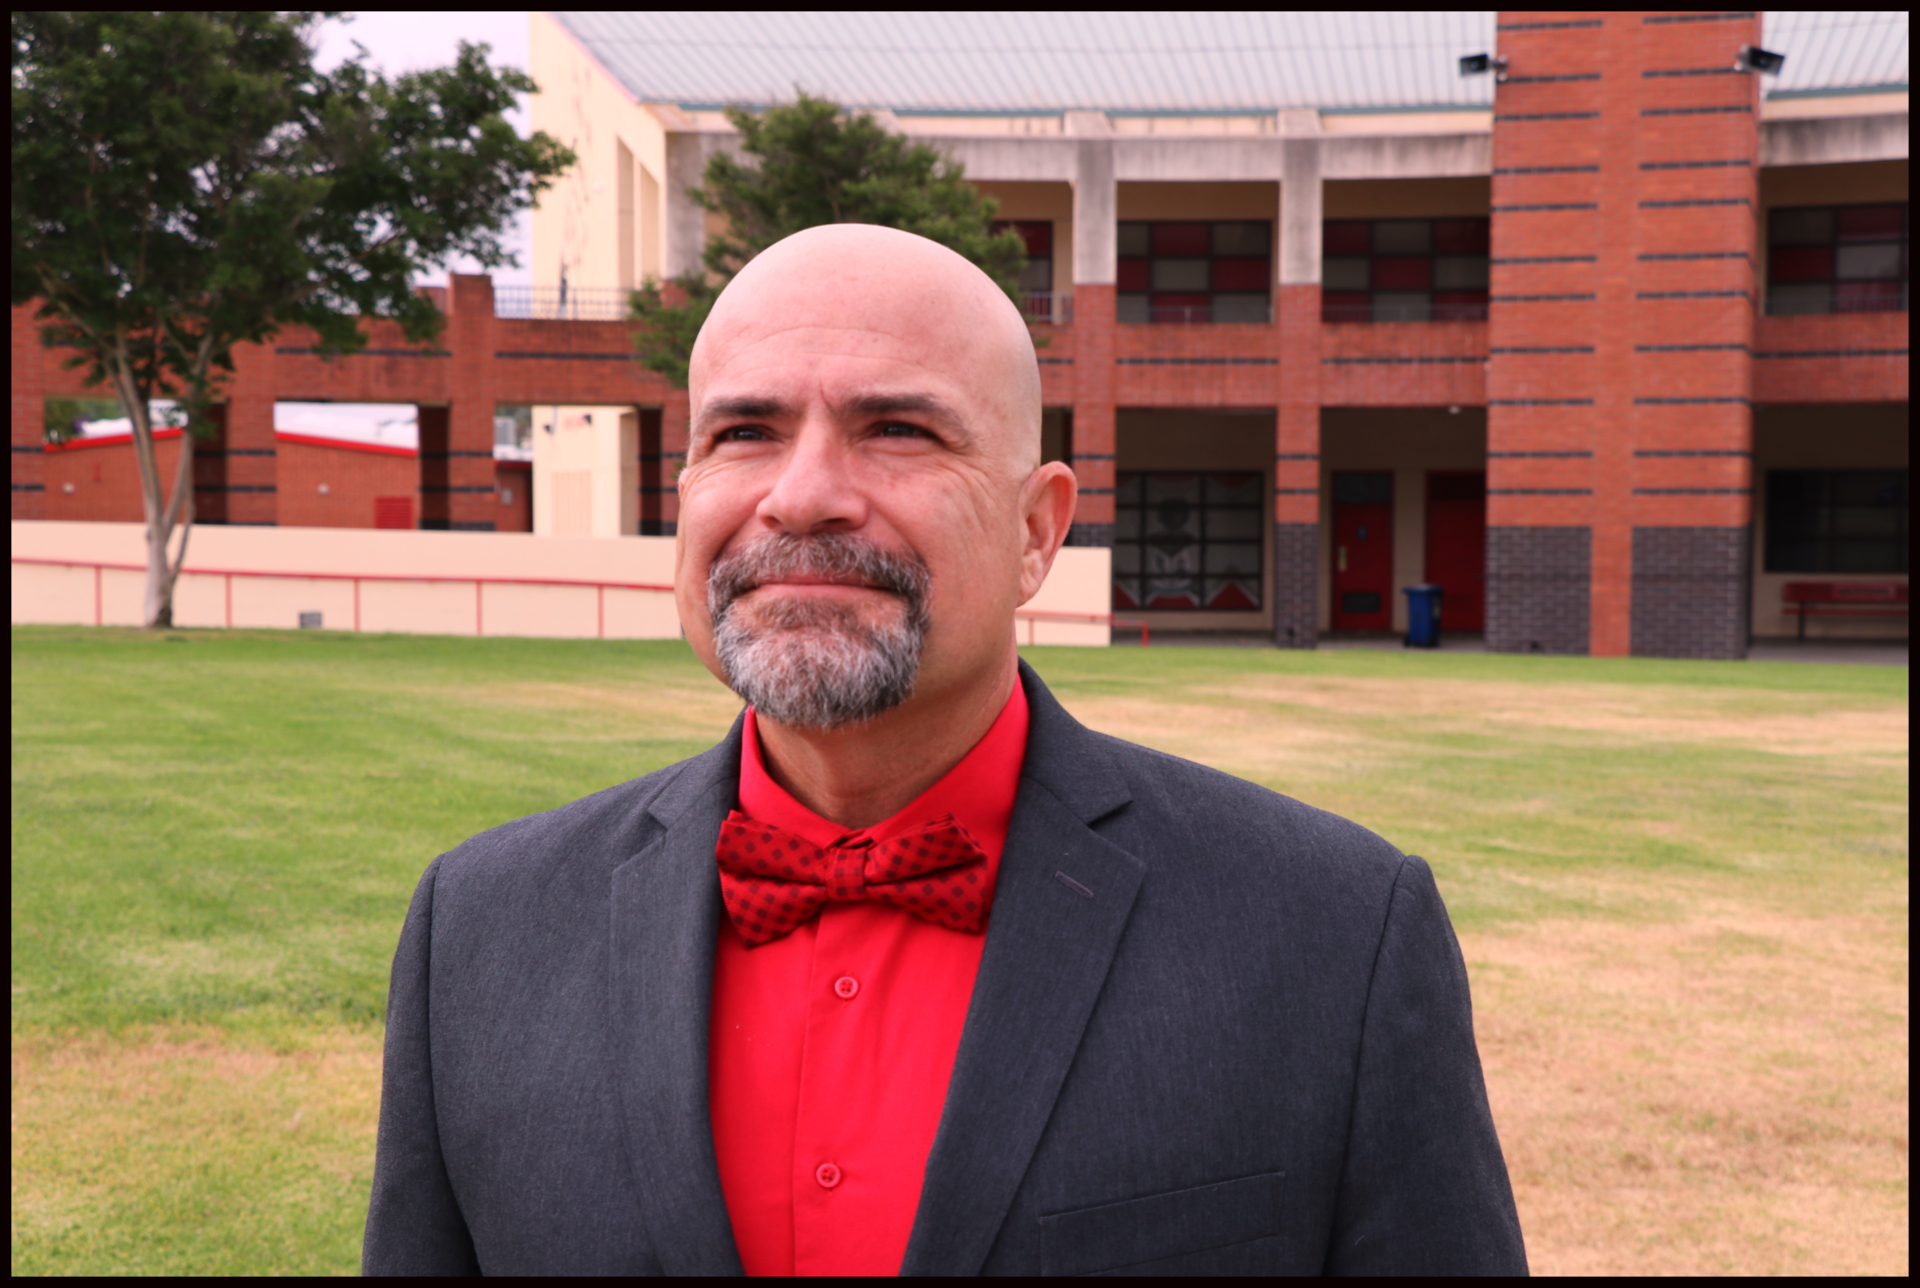 """Looking forward:  Fallbrook High School Principal Dr. Narciso Iglesias sees a great future ahead for the students and community by partnering with IB to become an IB World School.  """"I see us transforming in the next few years based on IB World School pedagogy.  Students will have access to teachers knowledgeable in the Theory of Knowledge,  learning approaches, and IB's Learner Profile of traits and characteristics,"""" Dr. Iglesias said."""